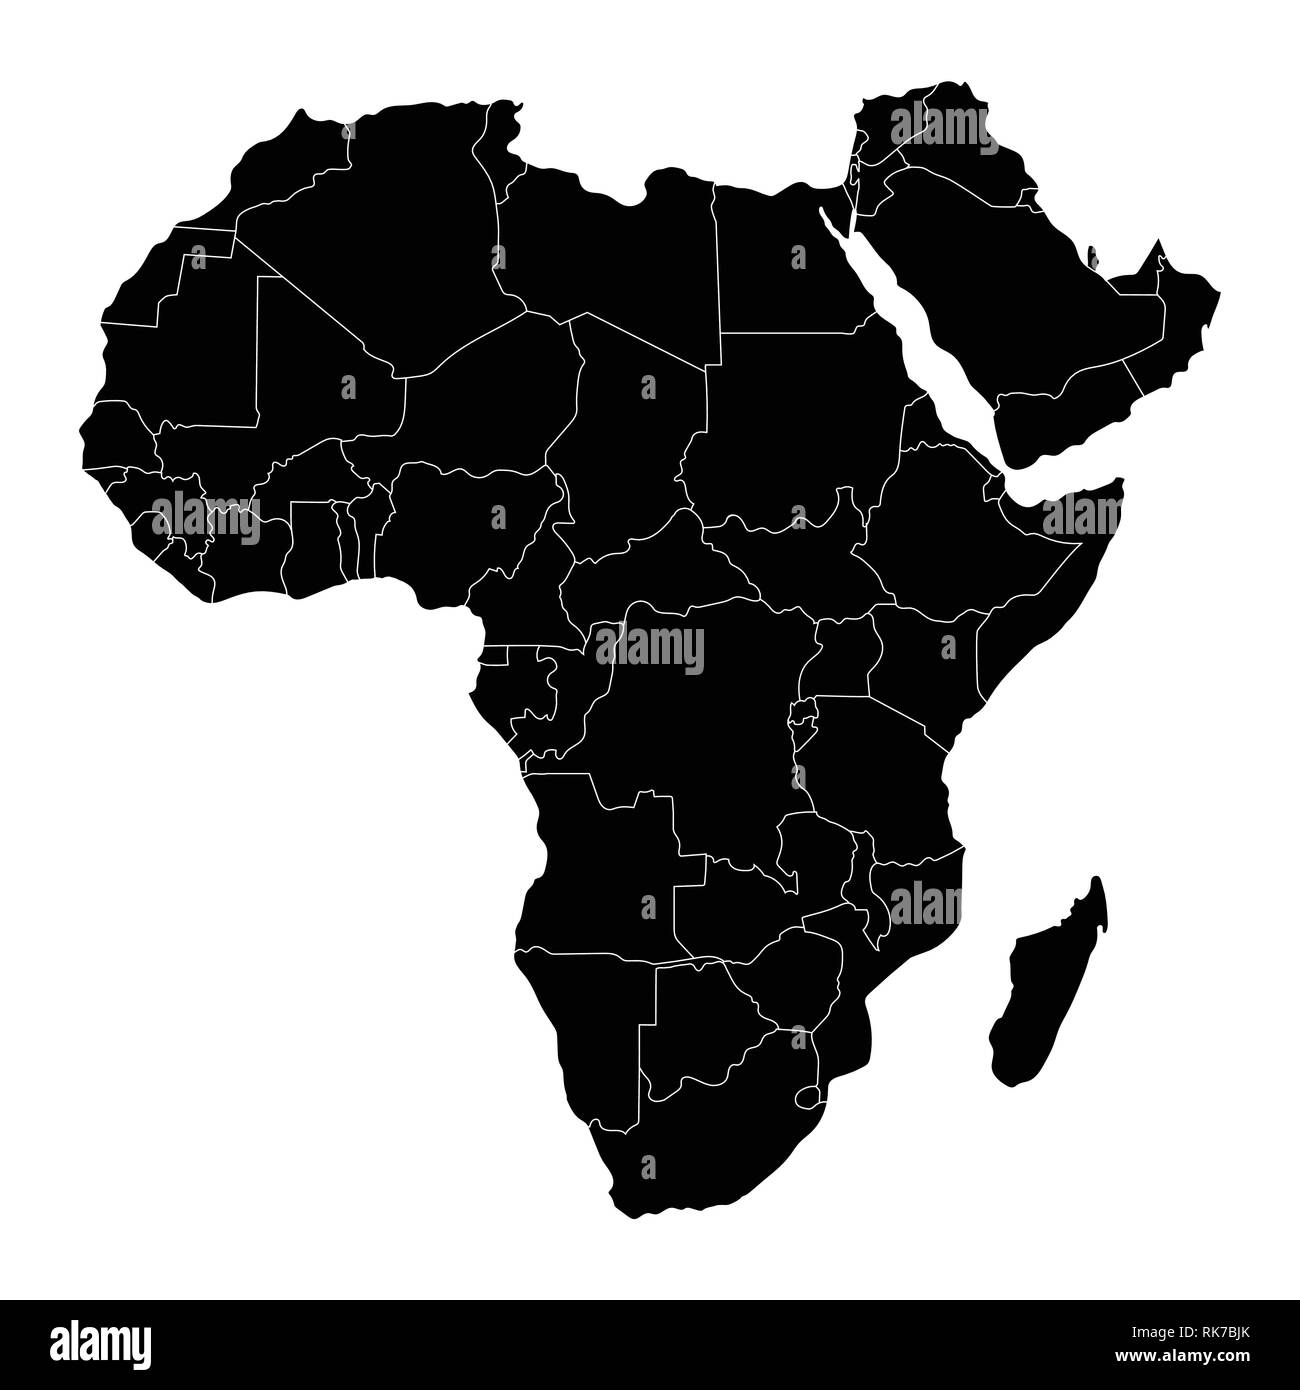 Africa Map Black And White Stock Photos Images Alamy